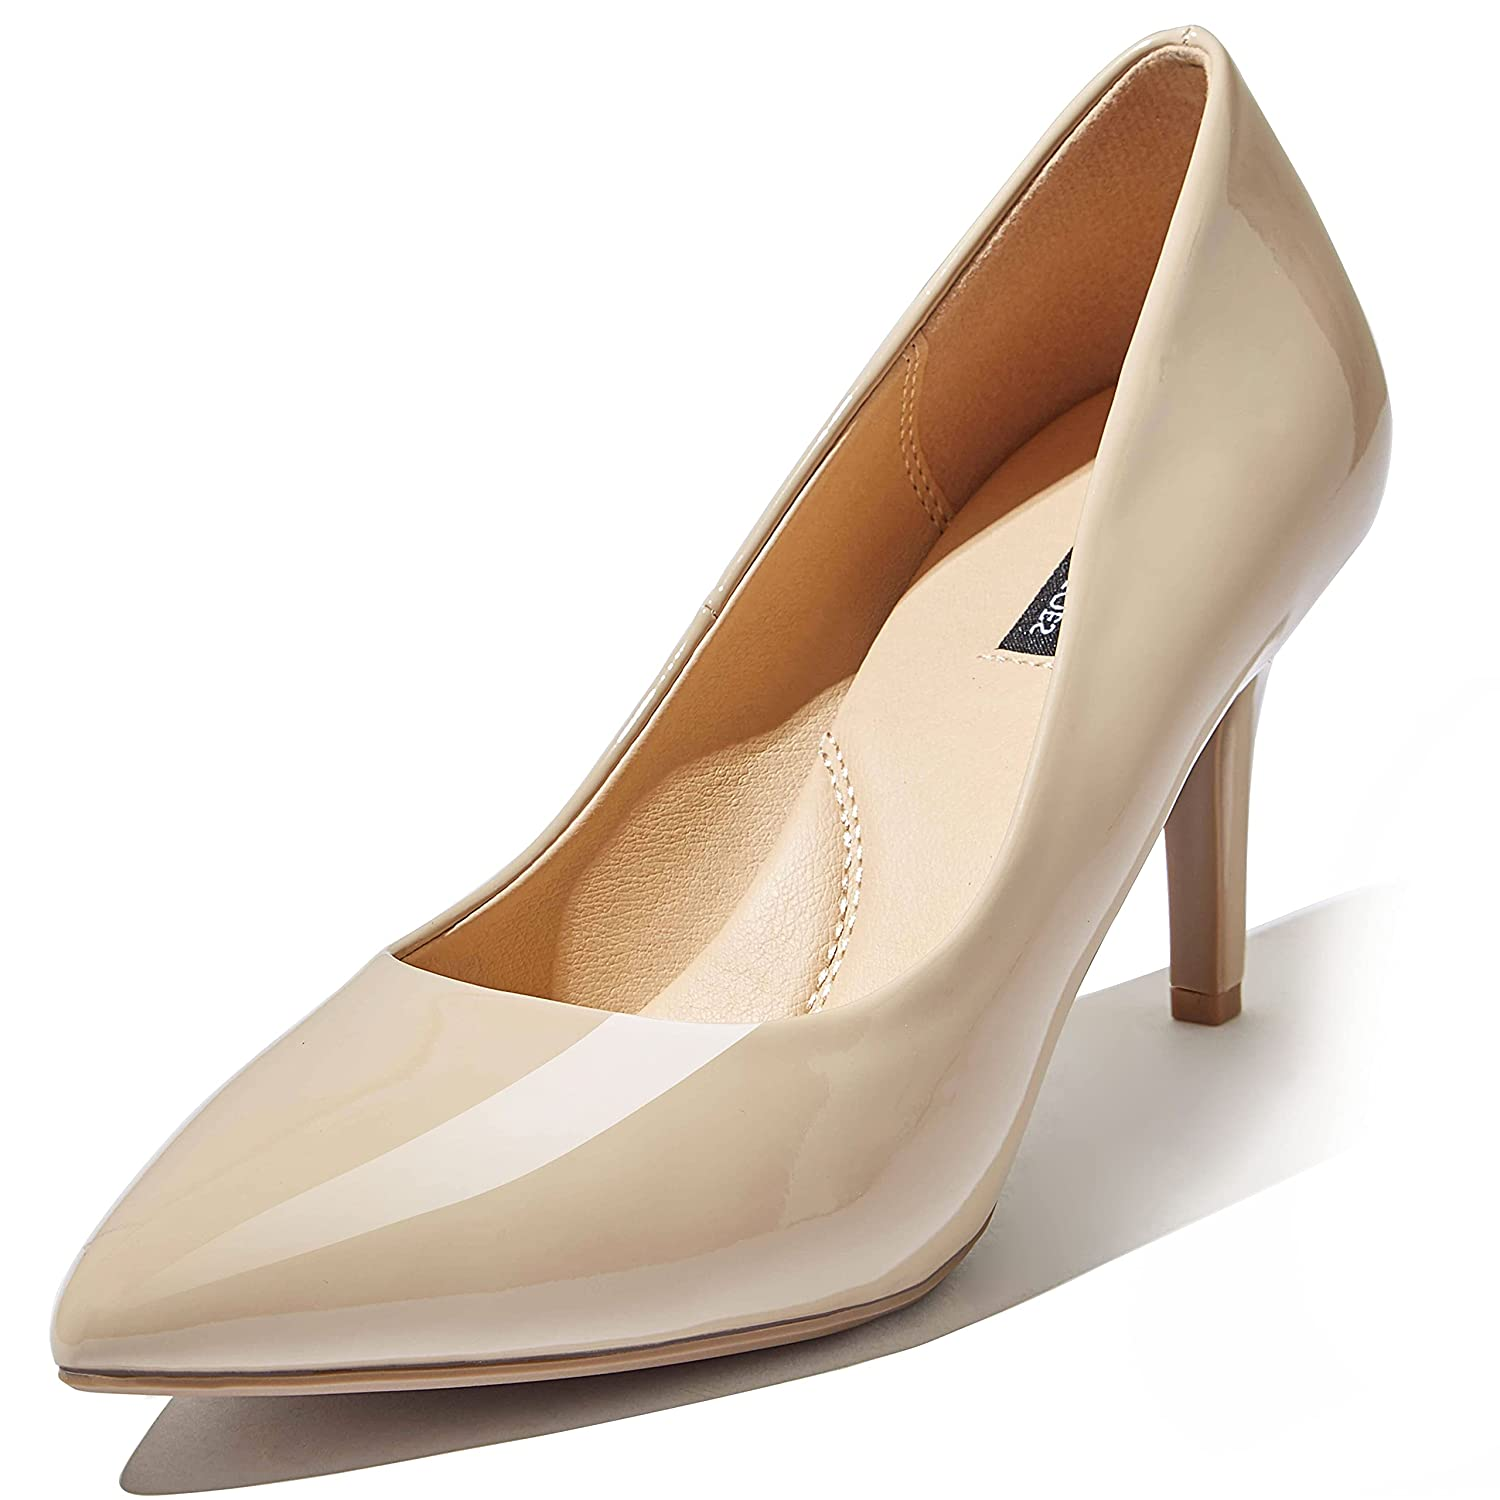 Details about  /Women/'s Pointy Toe Stilettos High Heels Slouch Mid Calf Shoes Party Cocktail D